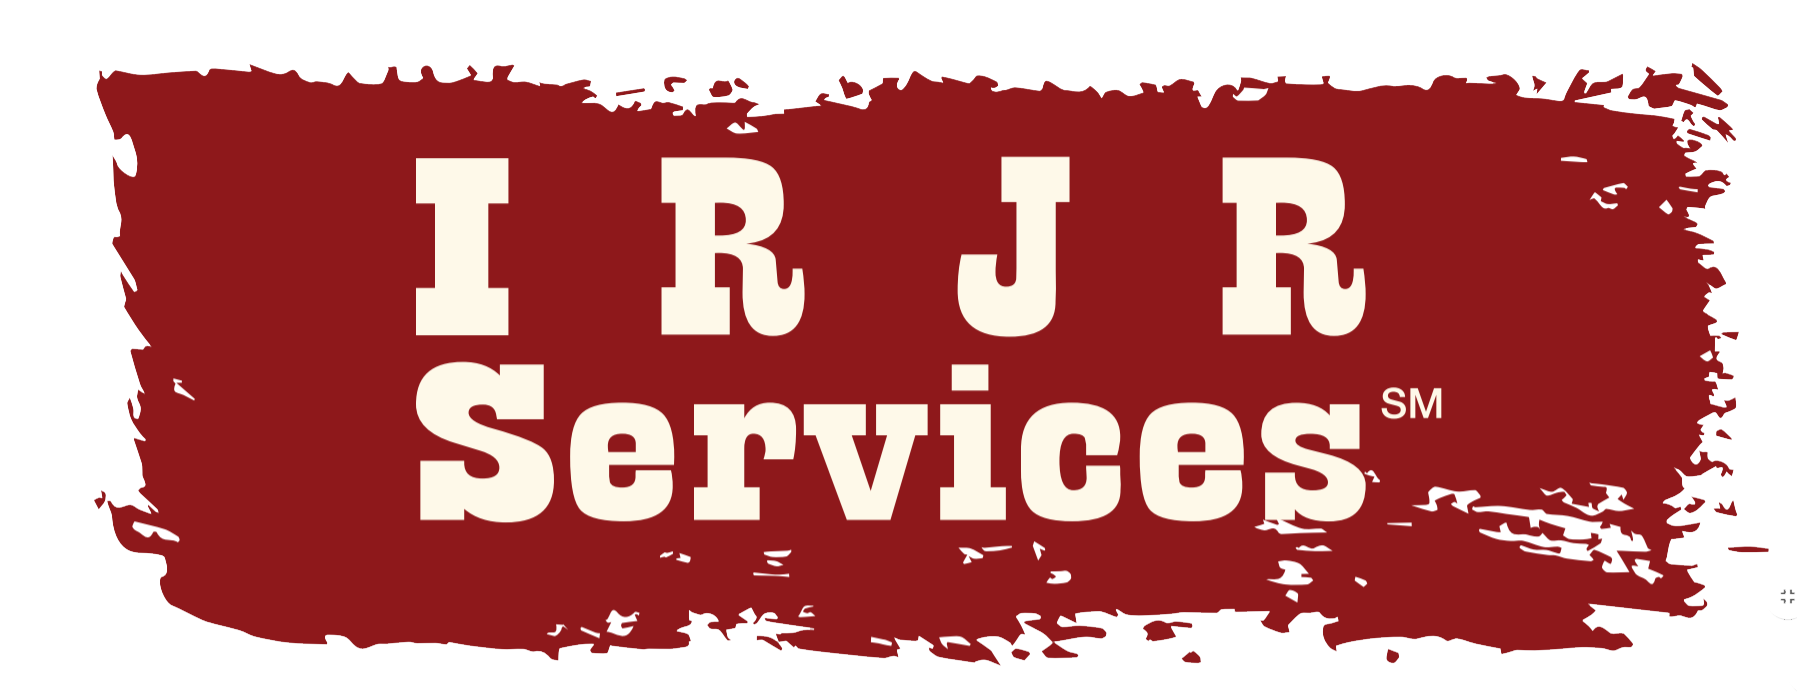 IRJR Services | Junk and Tree Removal